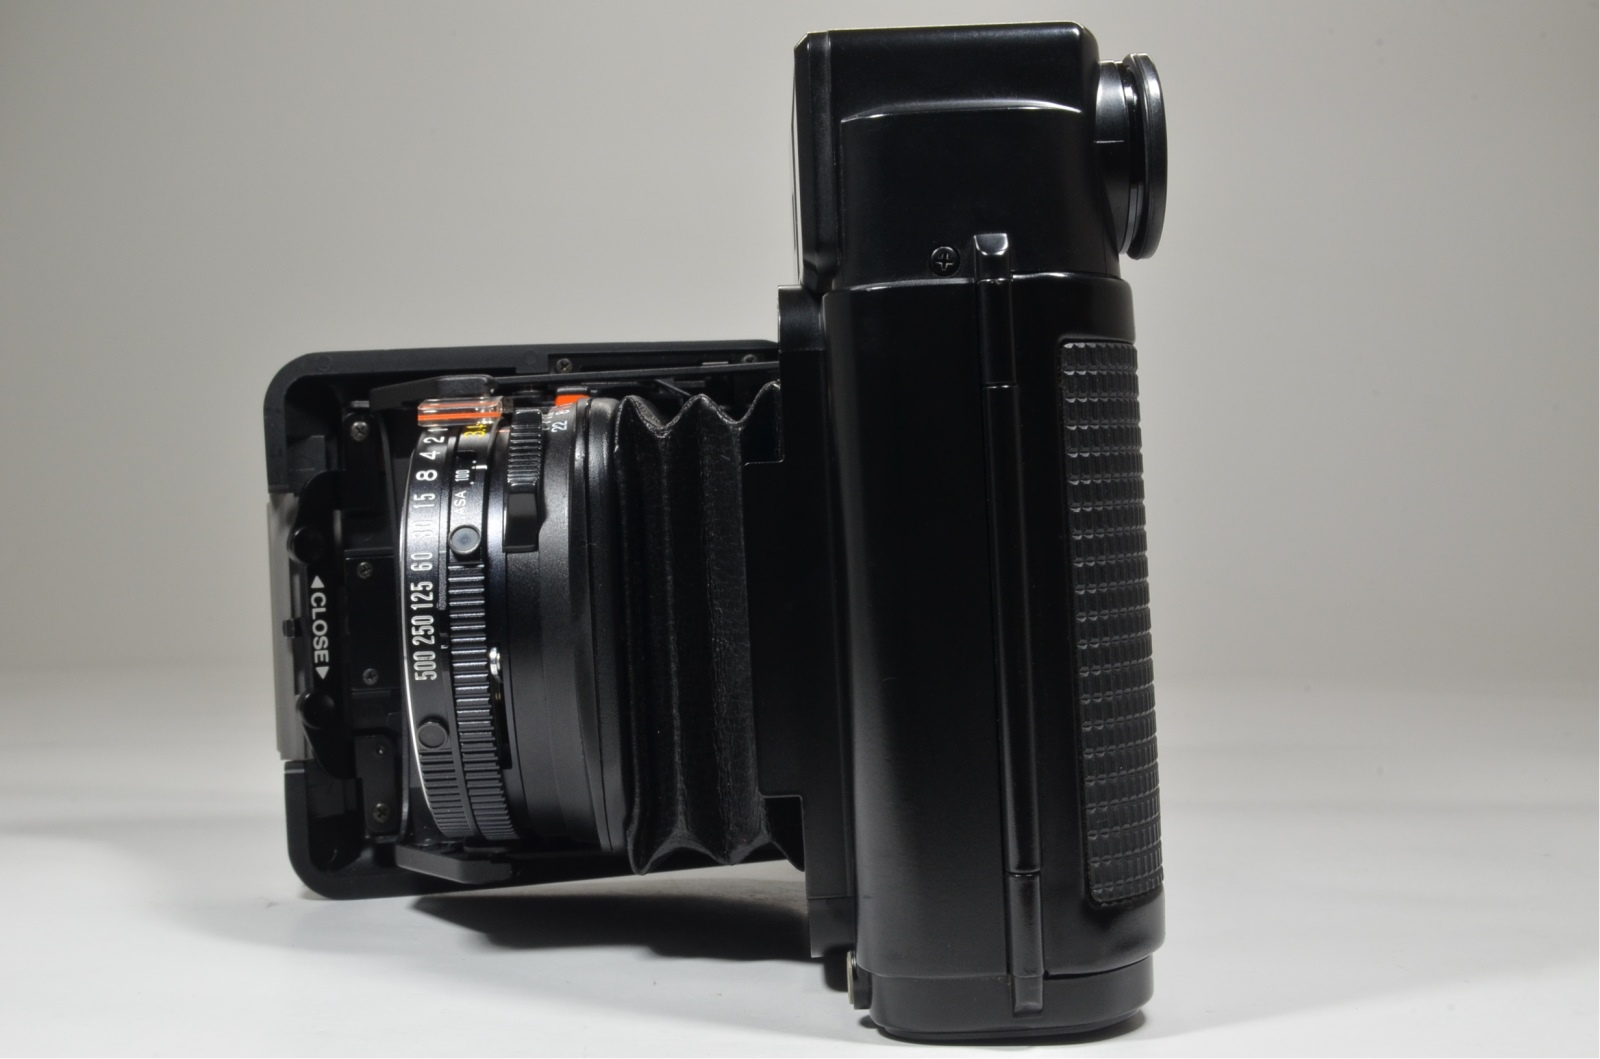 fujifilm fujica gs645 w/ hood and nikon dr-3 right angle finder